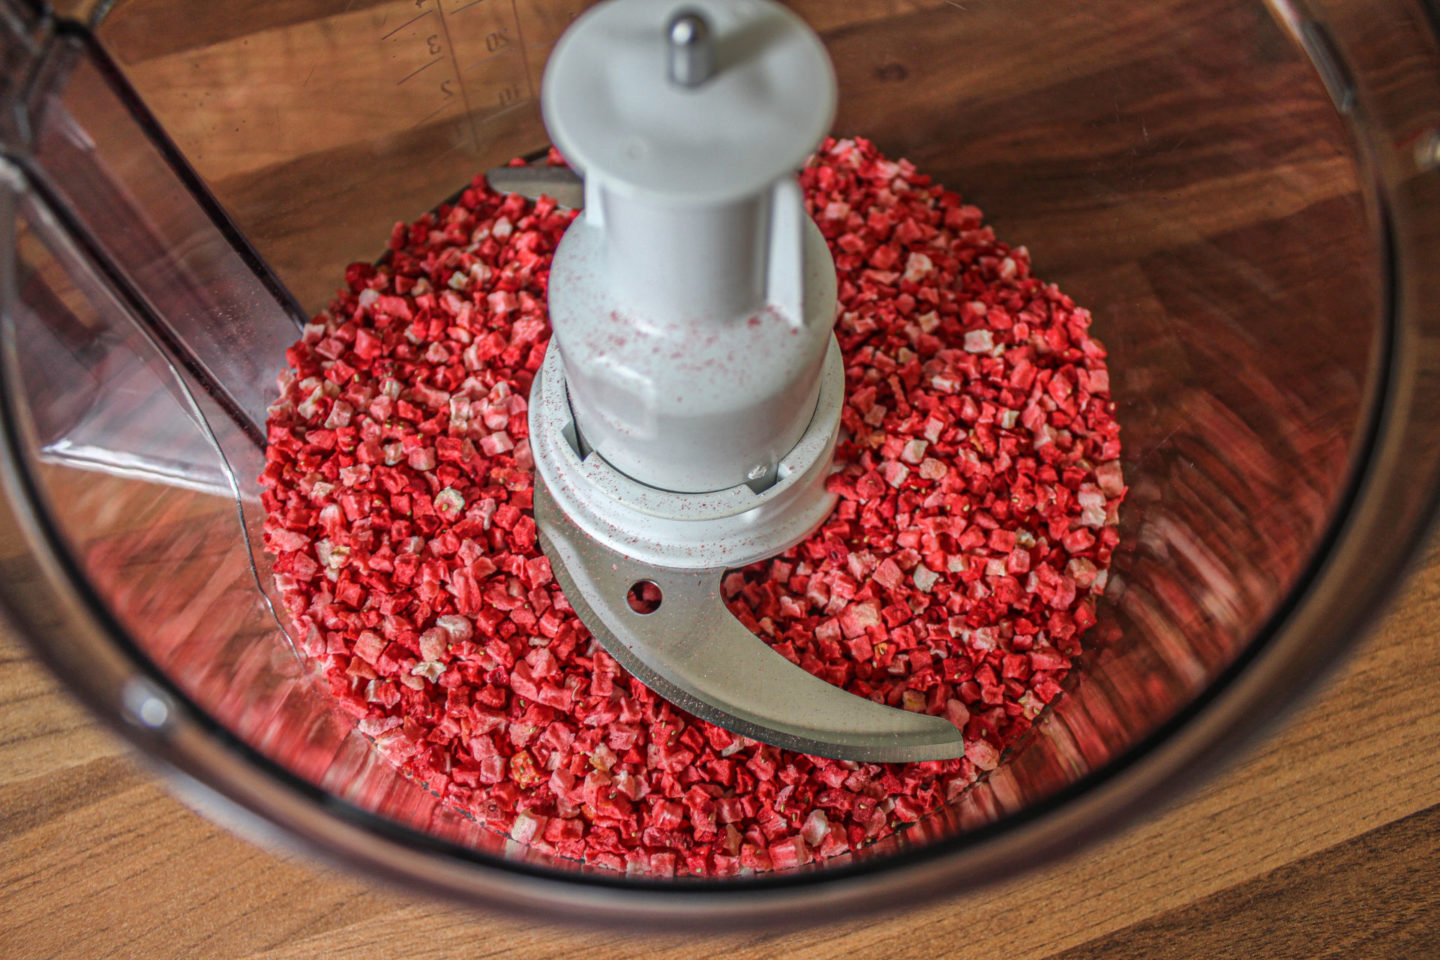 freeze-dried strawberries in a food processor bowl before blending